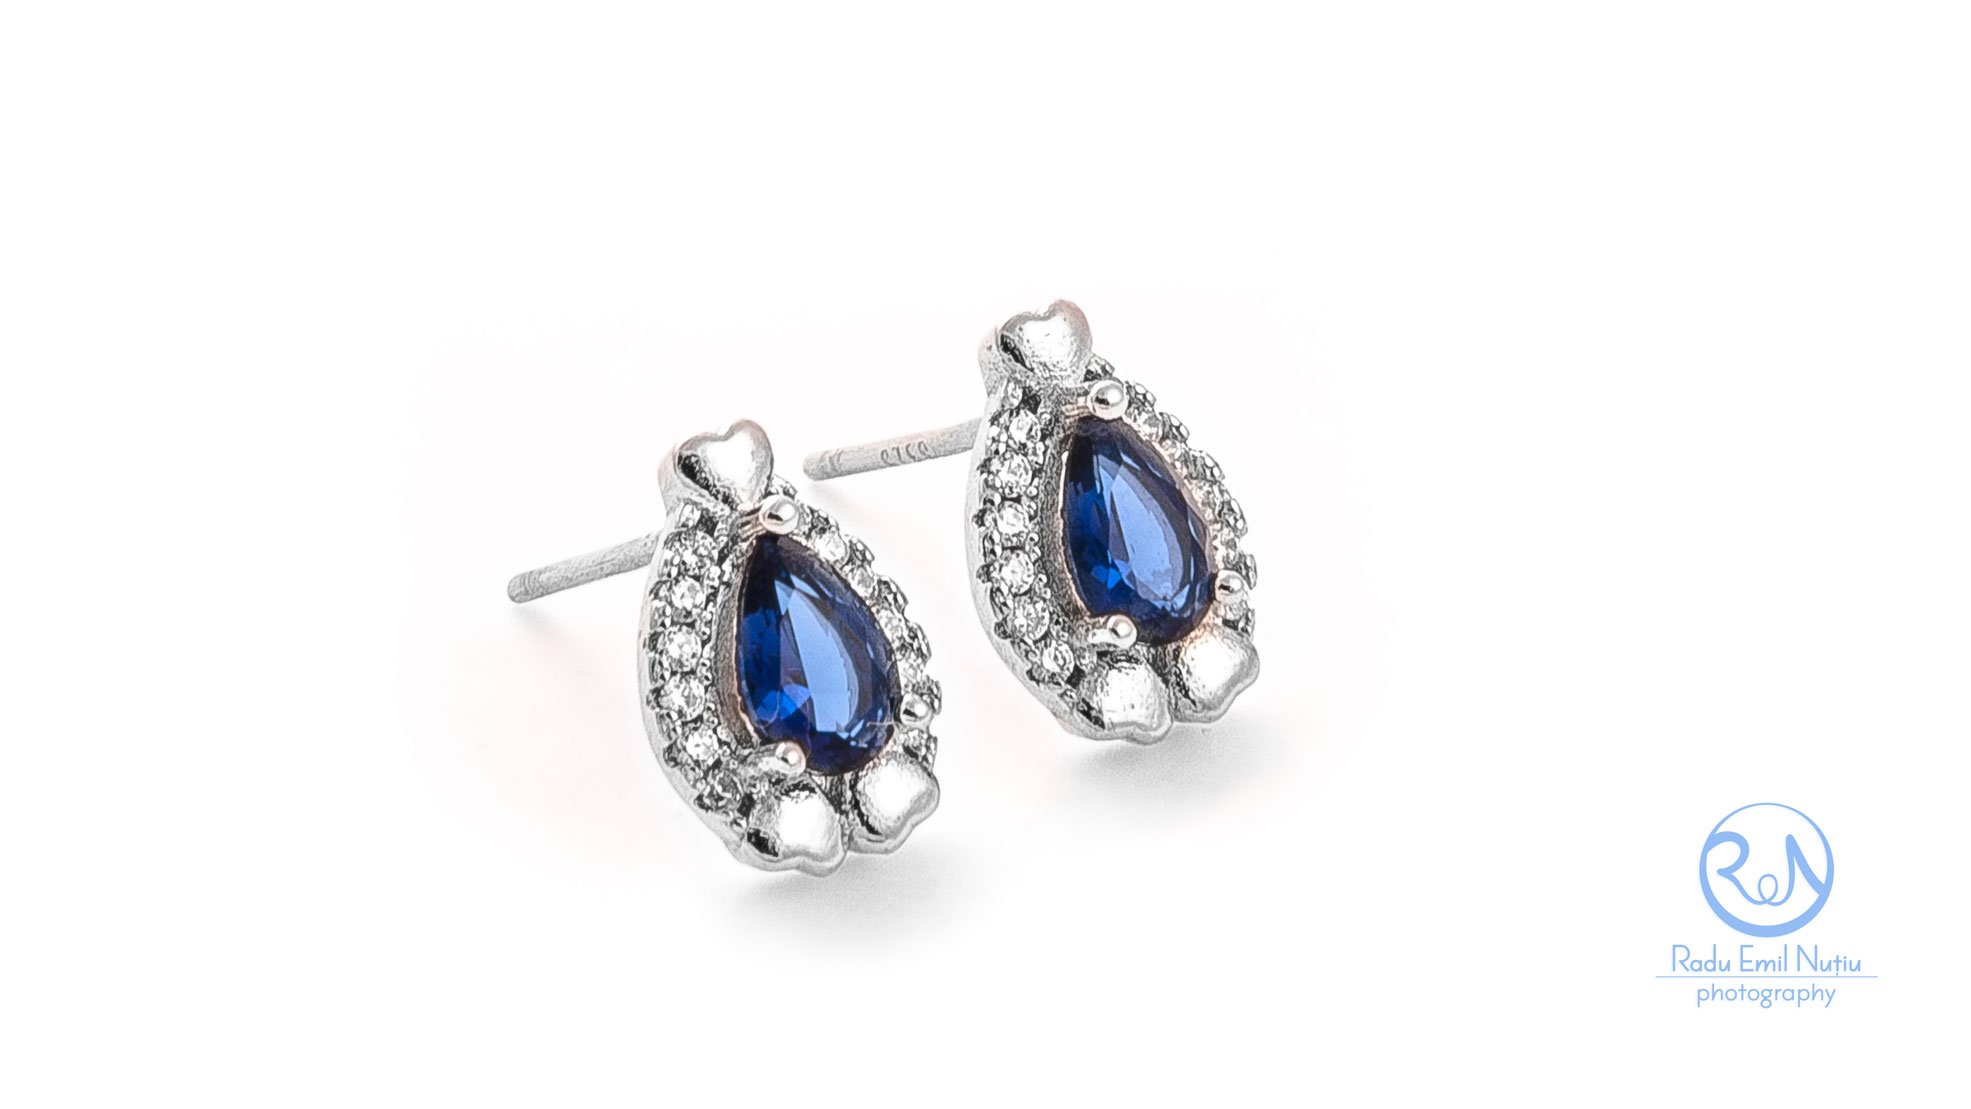 jewerly set with blue stones